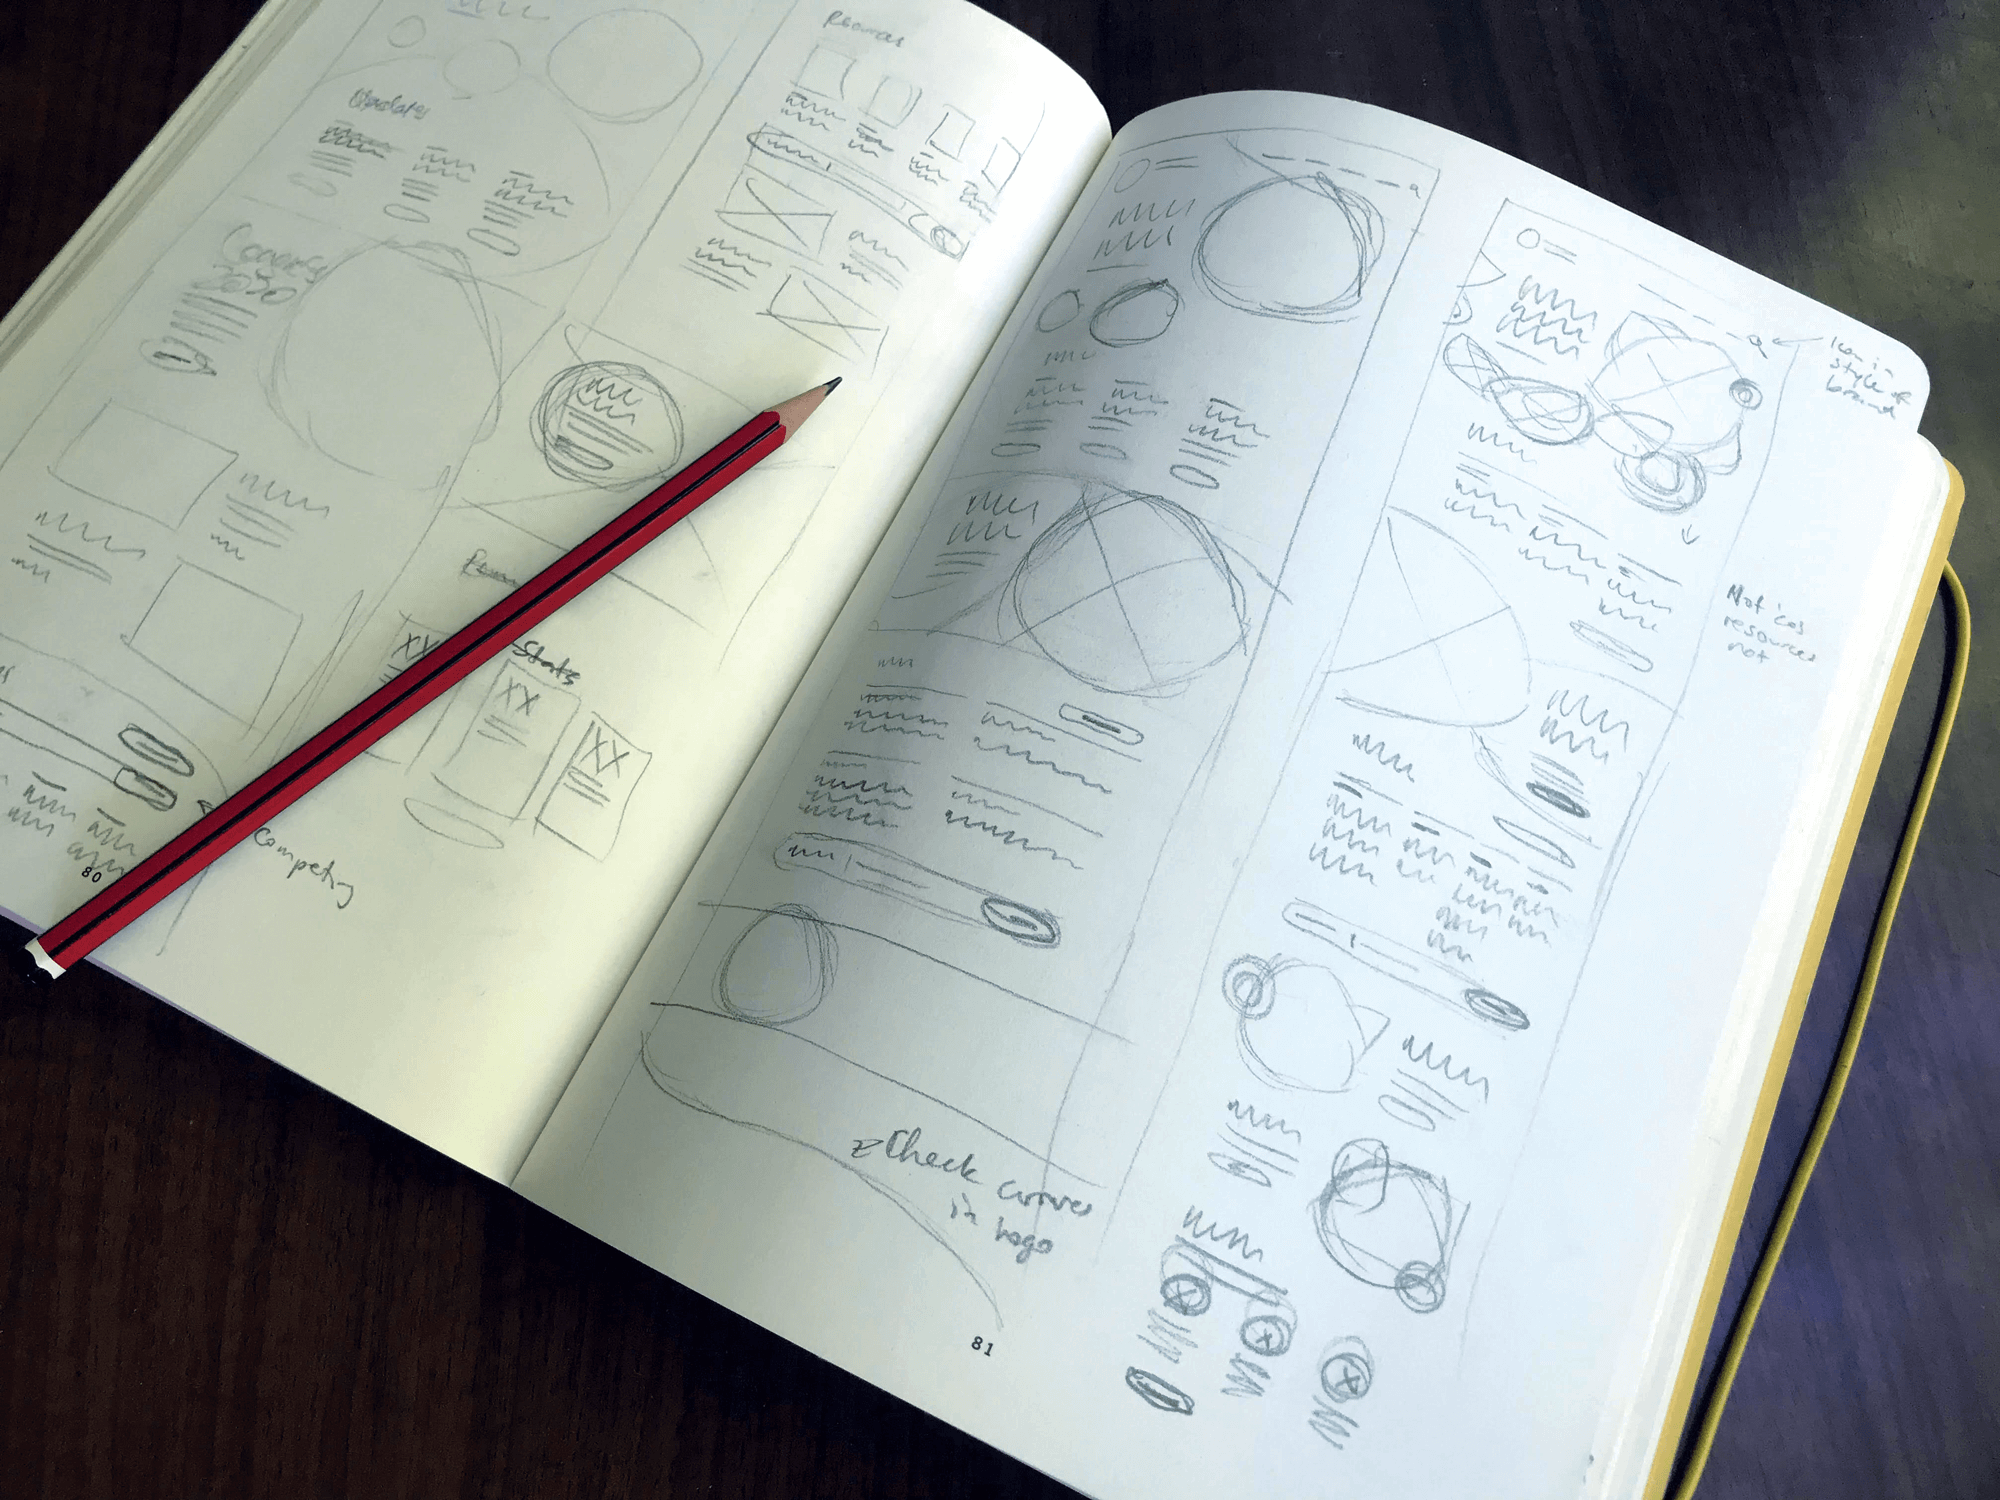 Sketches for the World Physiotherapy website layout